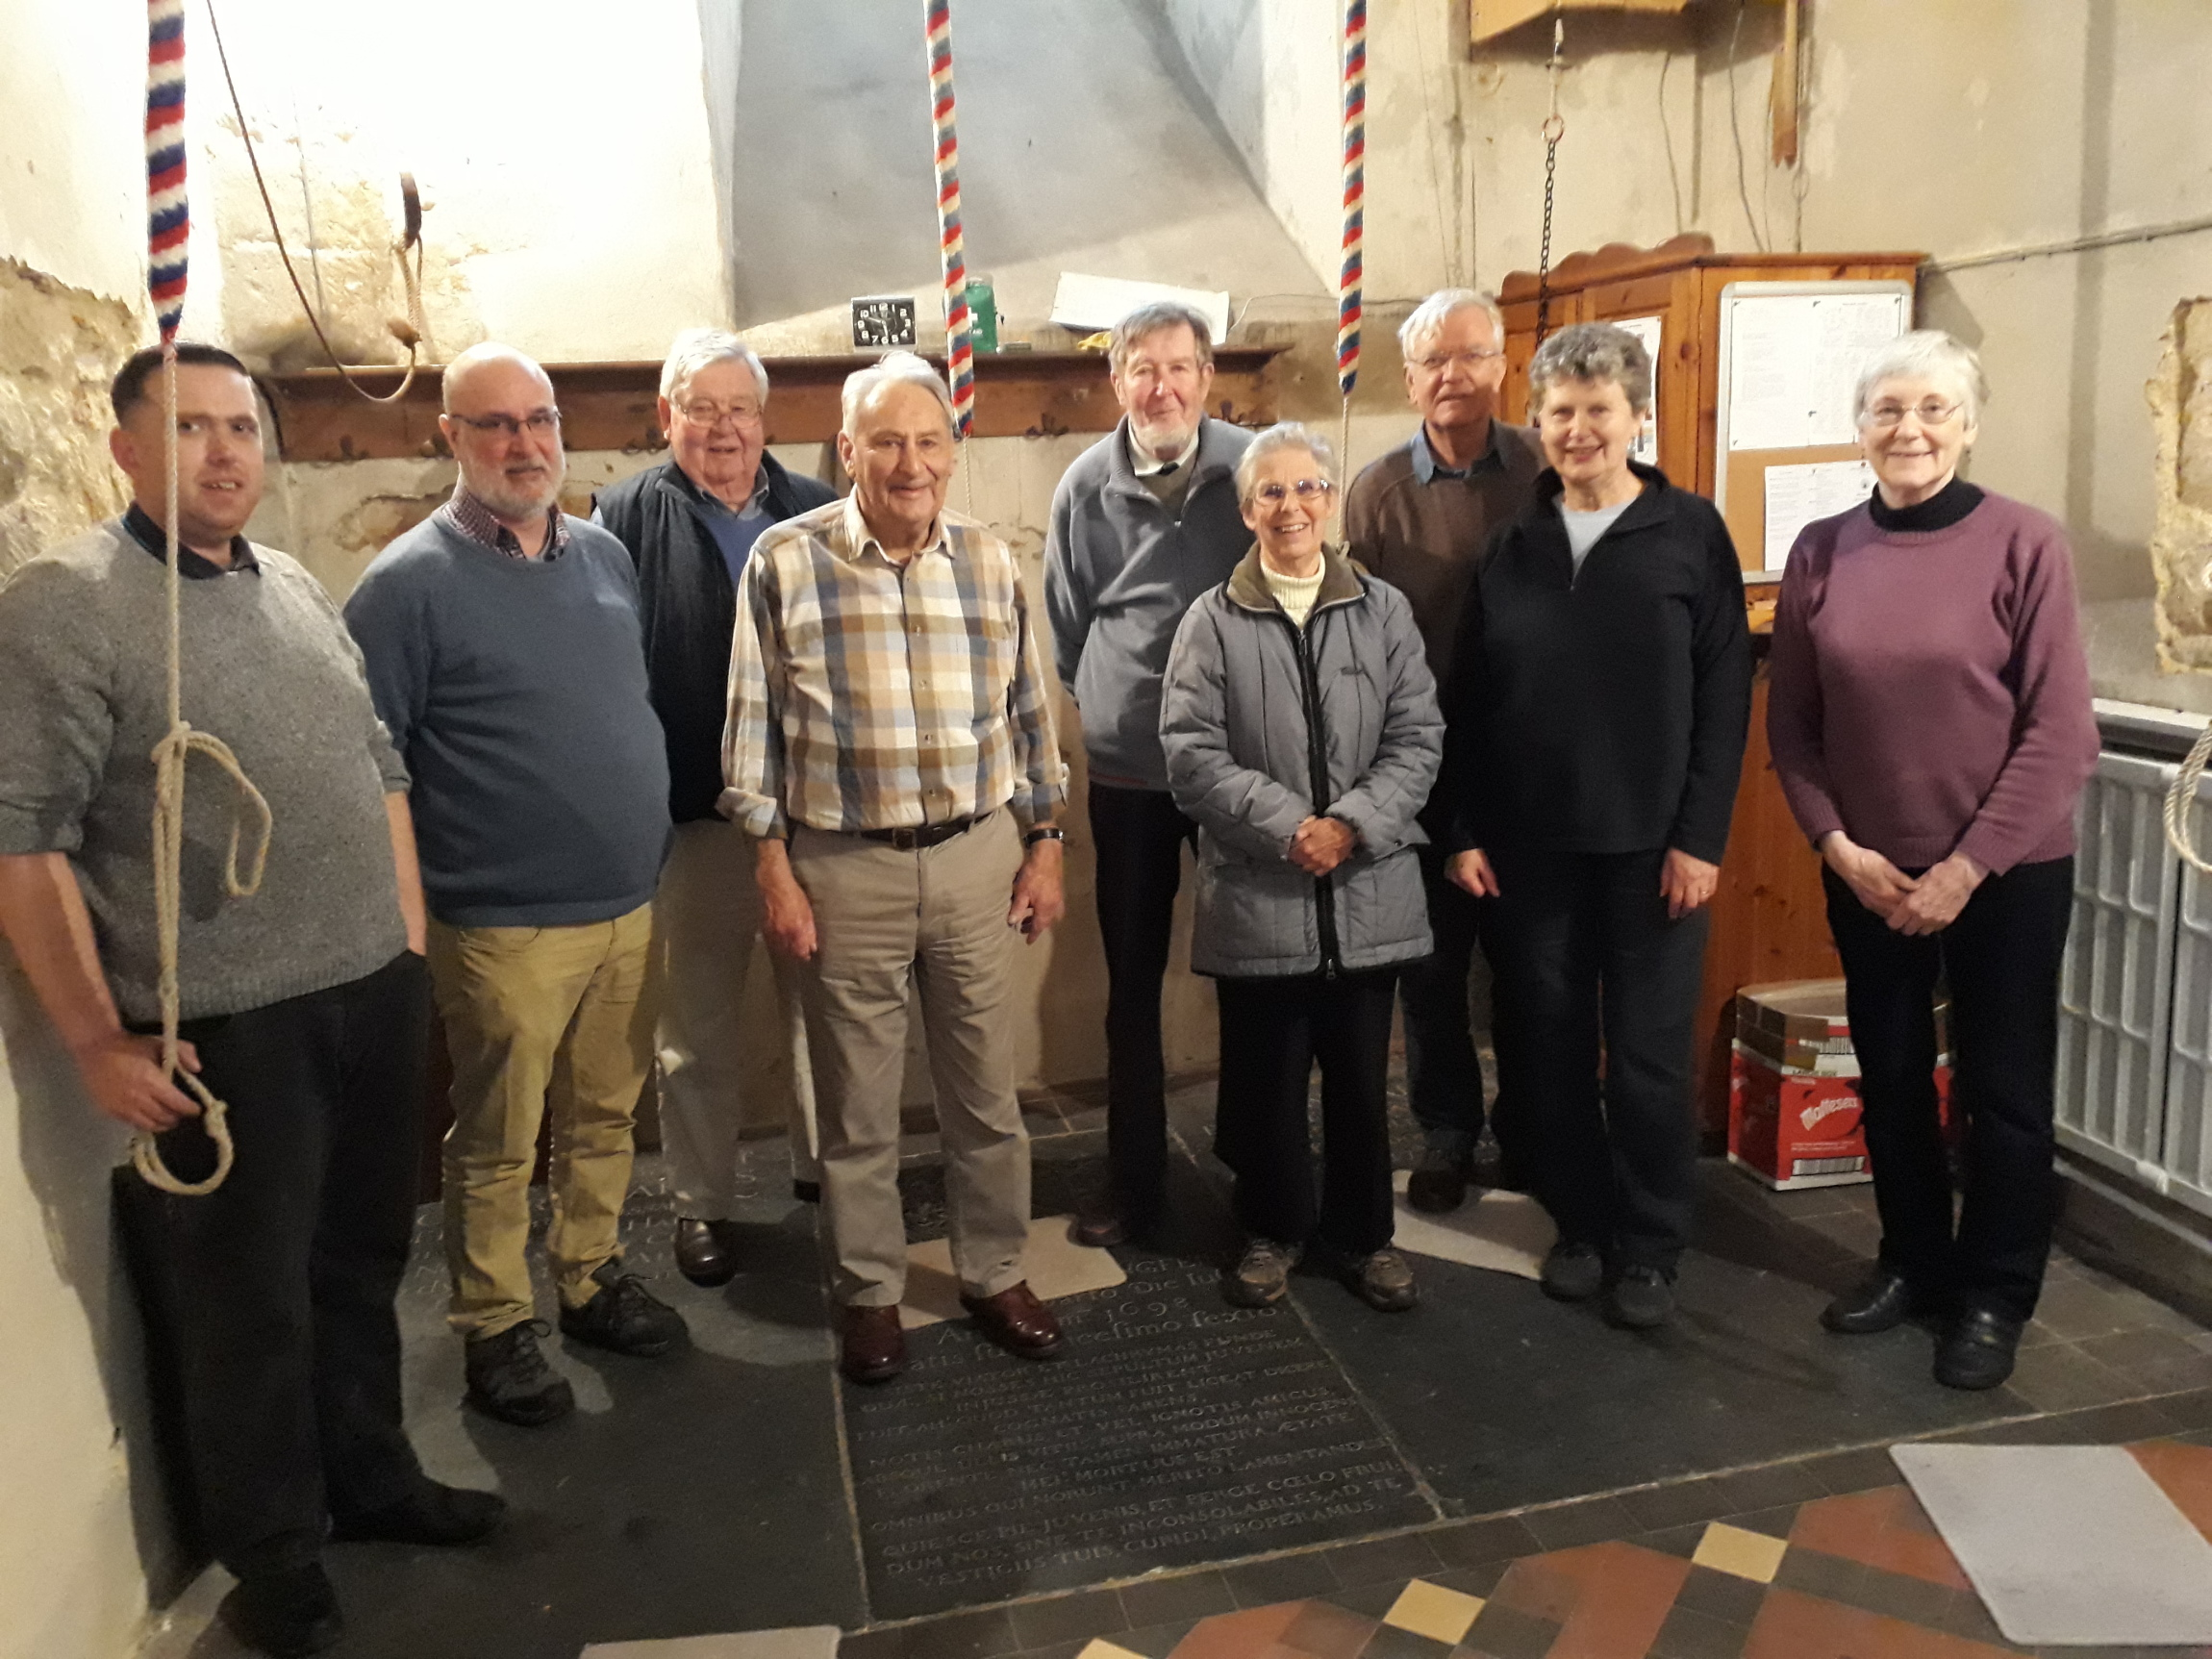 The band, including the Team Rector, David Meakin (2nd from left) with Stephen and Peggy Sidebotham (5th and 6th from left) and Stan Killick, Churchwarden (3rd from left).